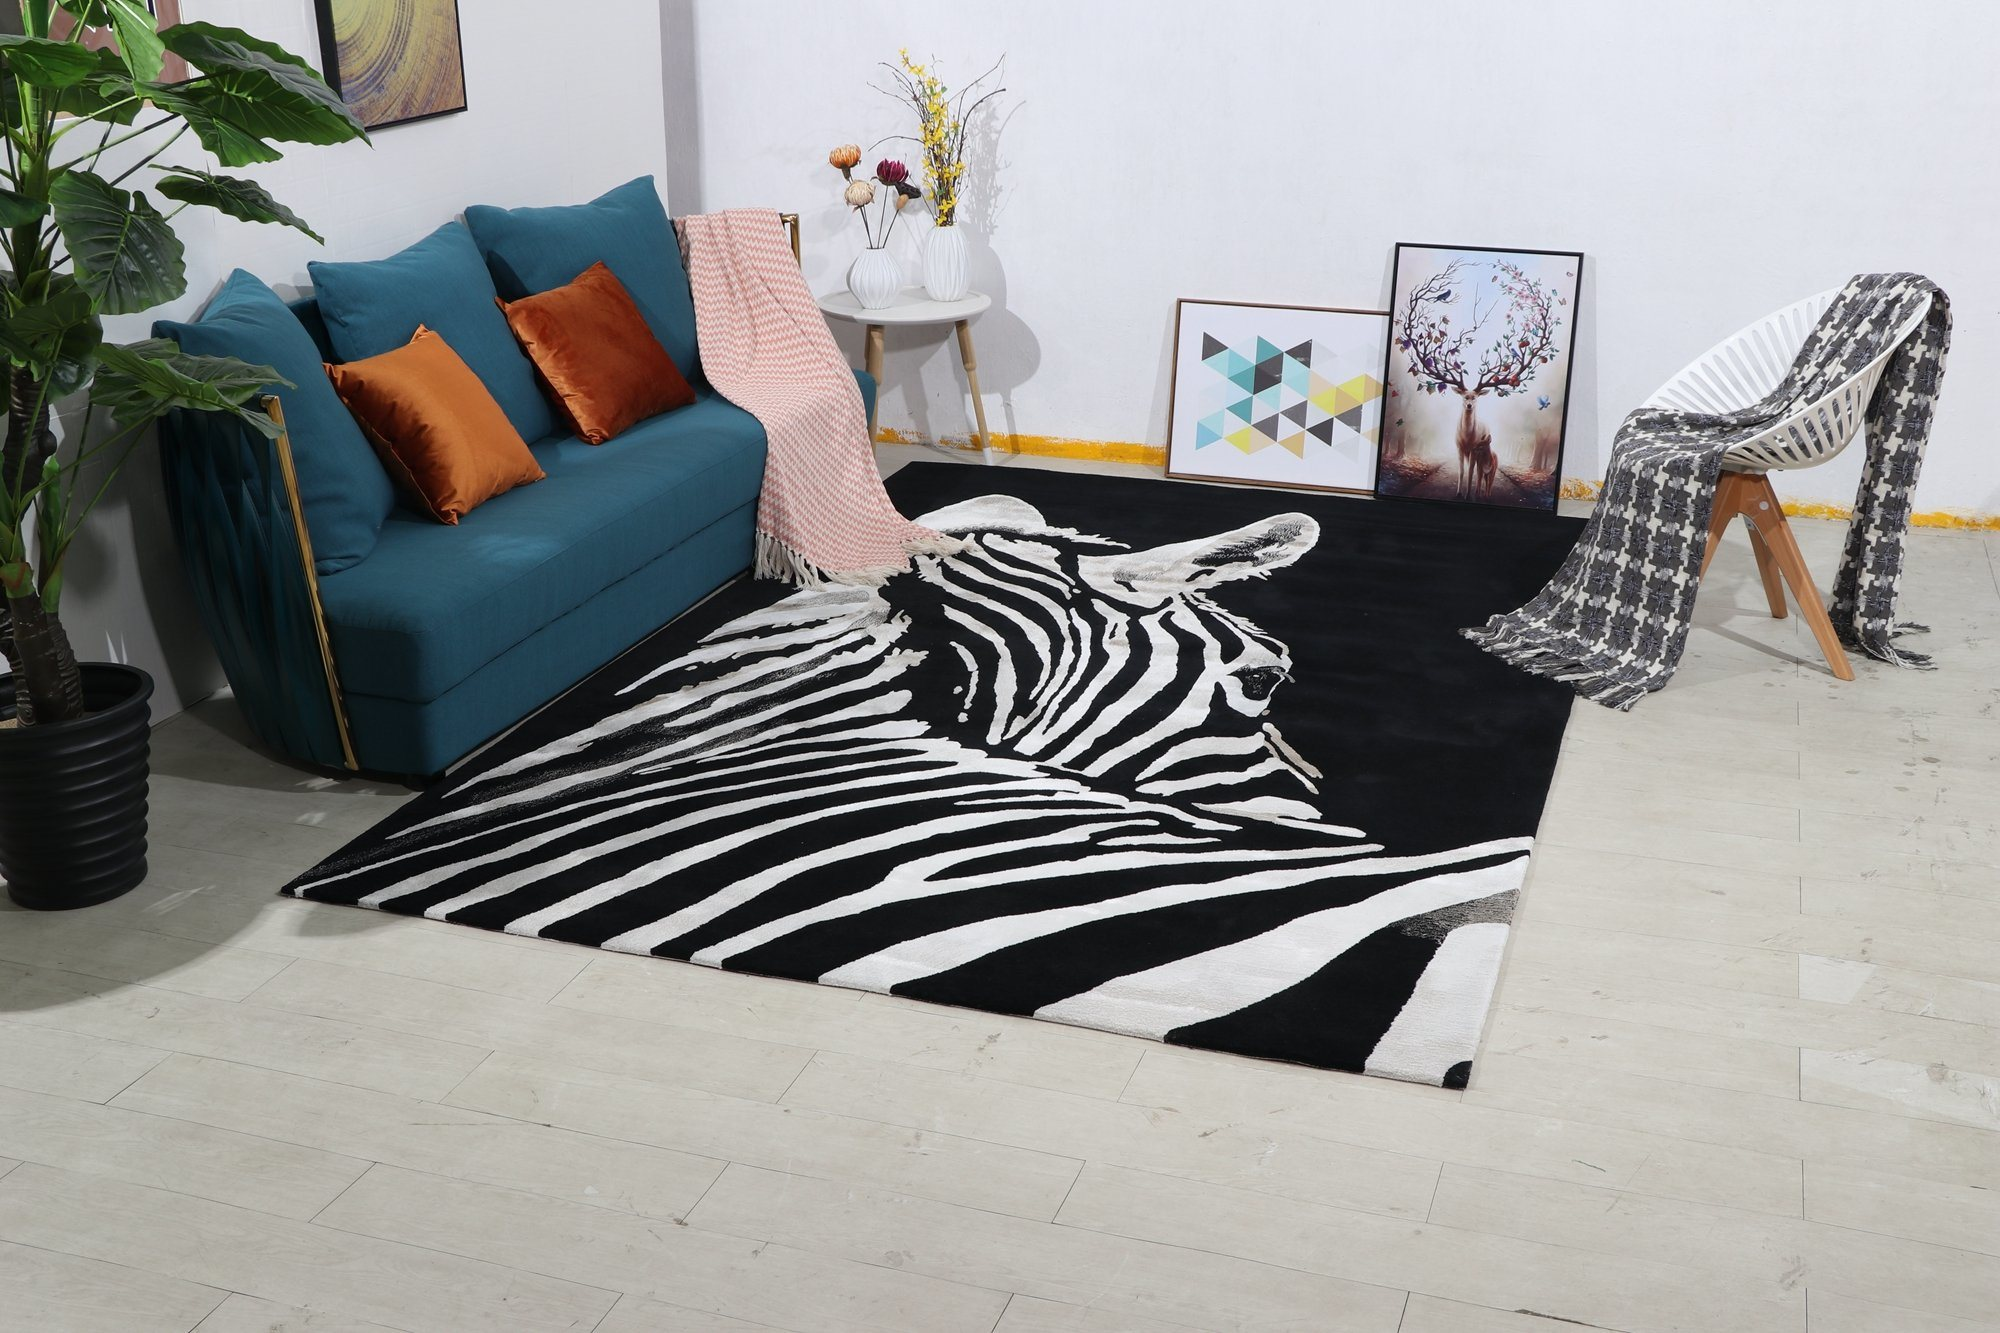 Zebra Carpet In Living Room Handtuft Carpet Wool Carpet Area Rug